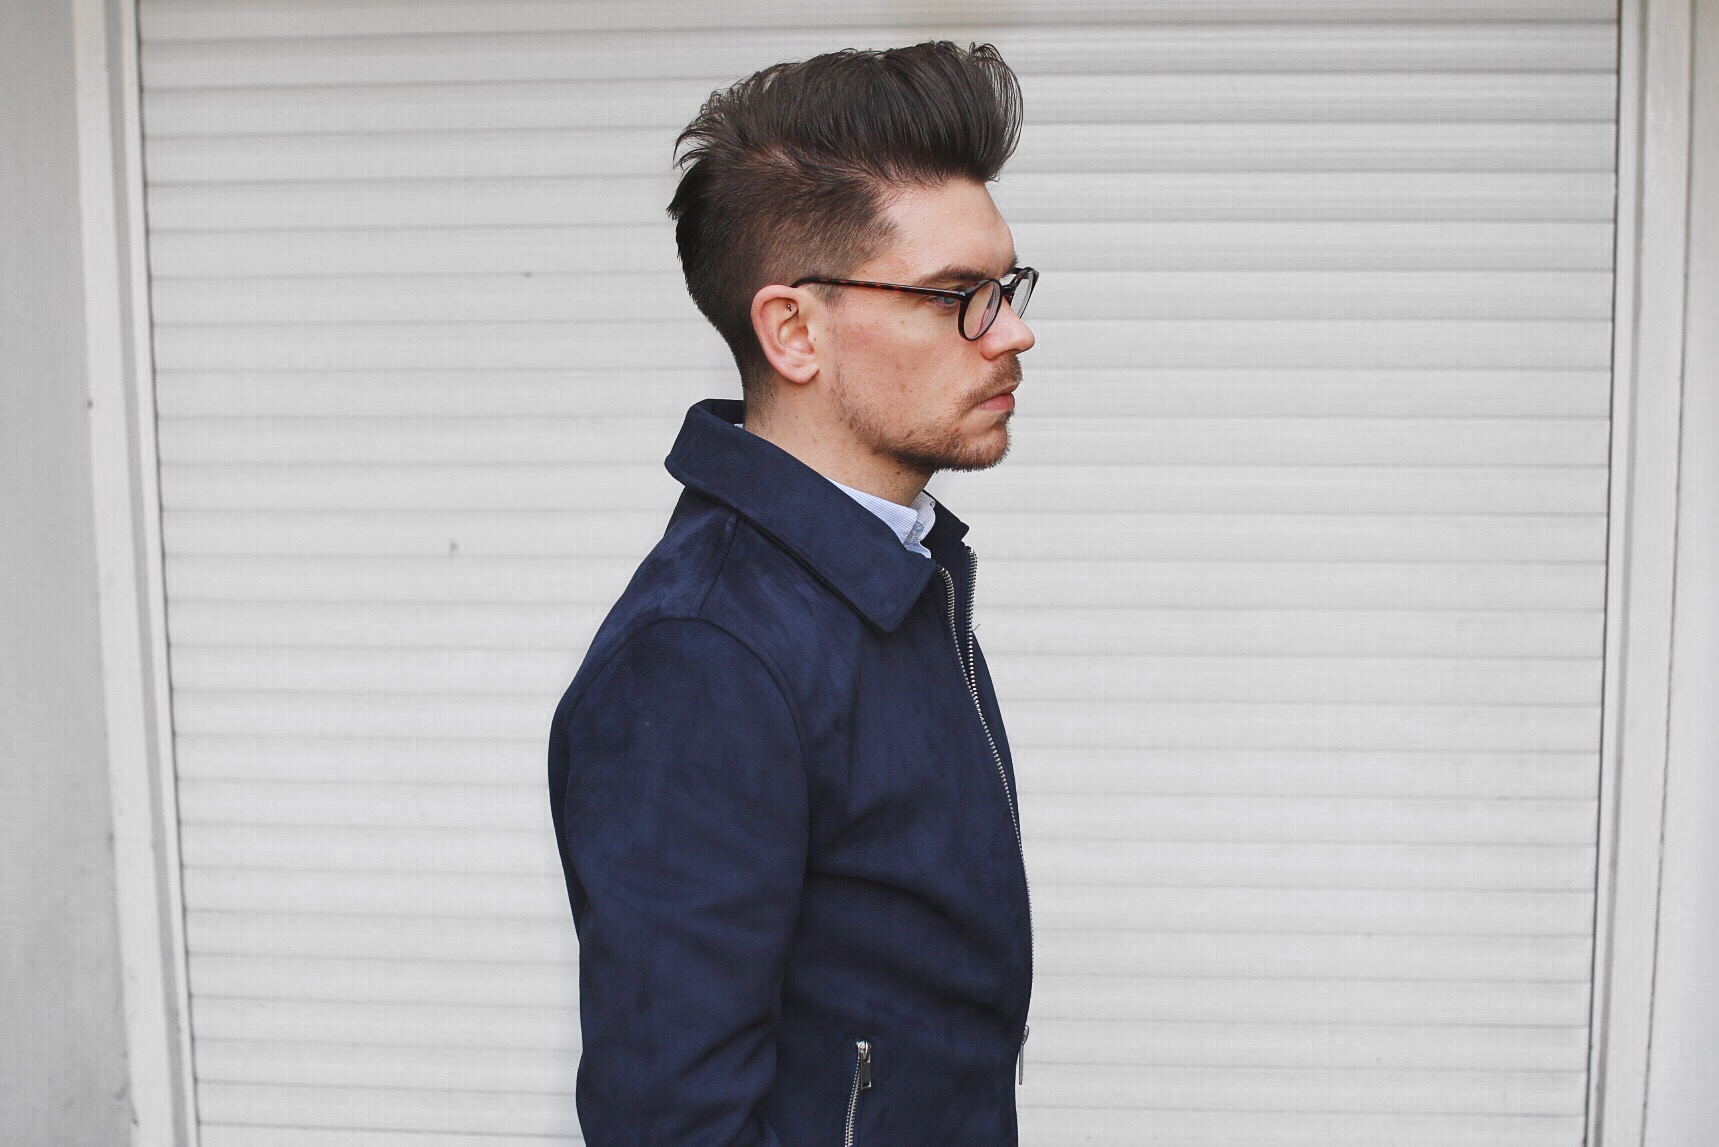 Mens Quiff Side